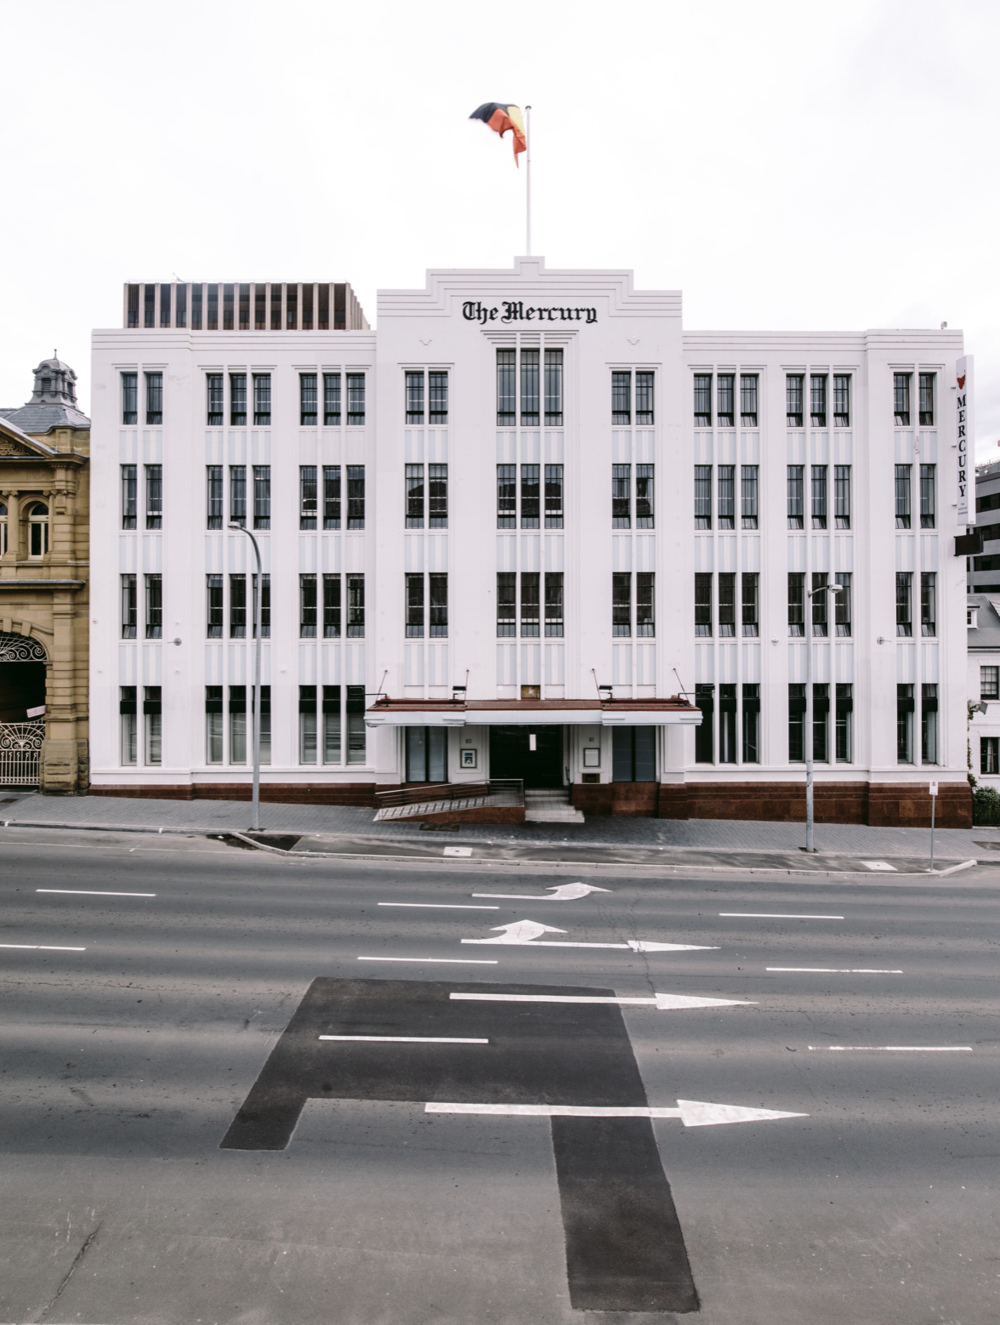 the old mercury building